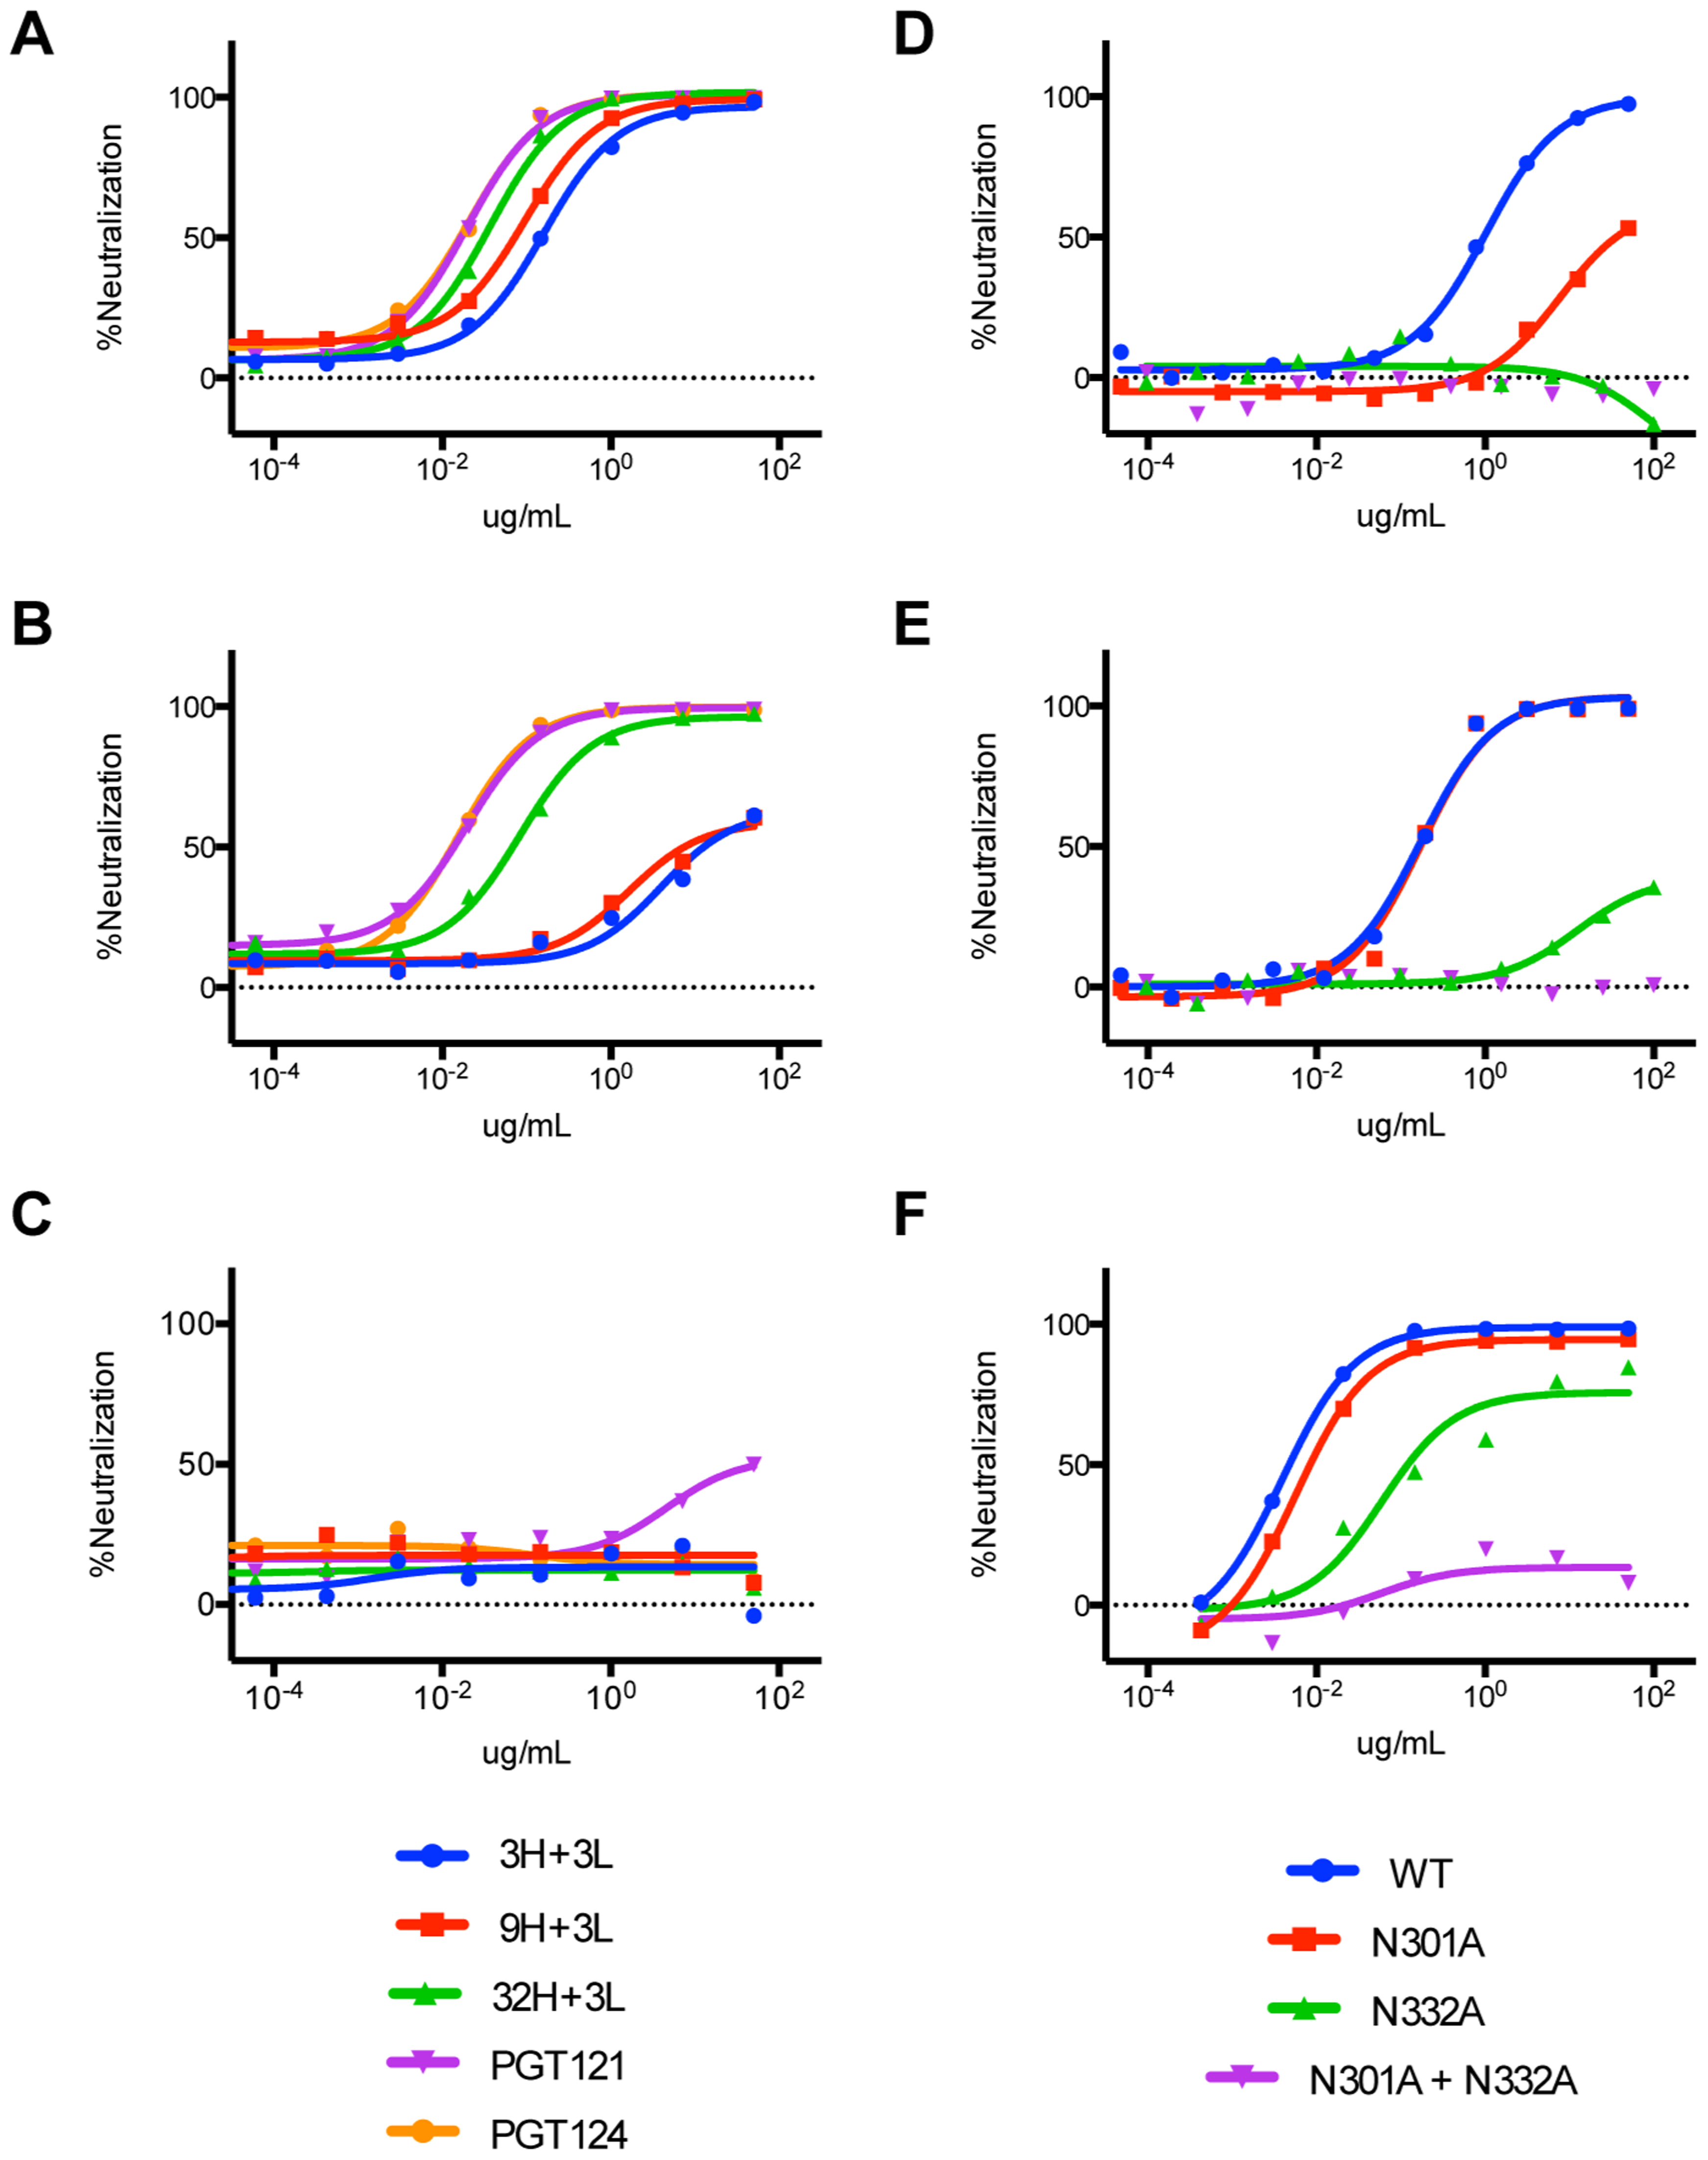 Neutralization assays on JR-FL glycan mutants indicate binding of inferred intermediate antibodies to both N301 and N332 on HIV-1 Env.